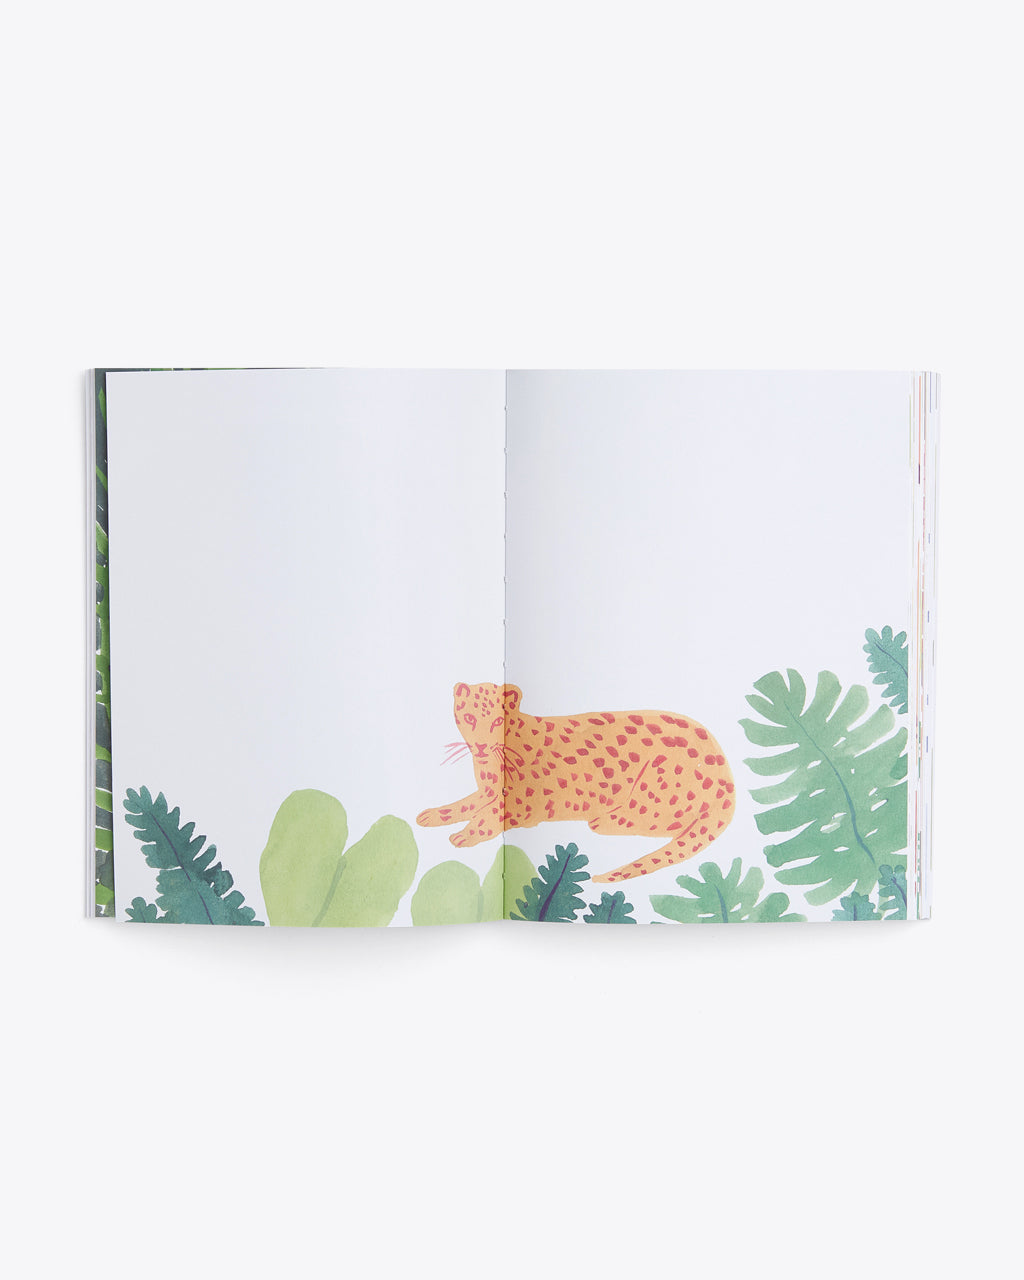 interior image of blank pages featuring a landscape design and a leopard